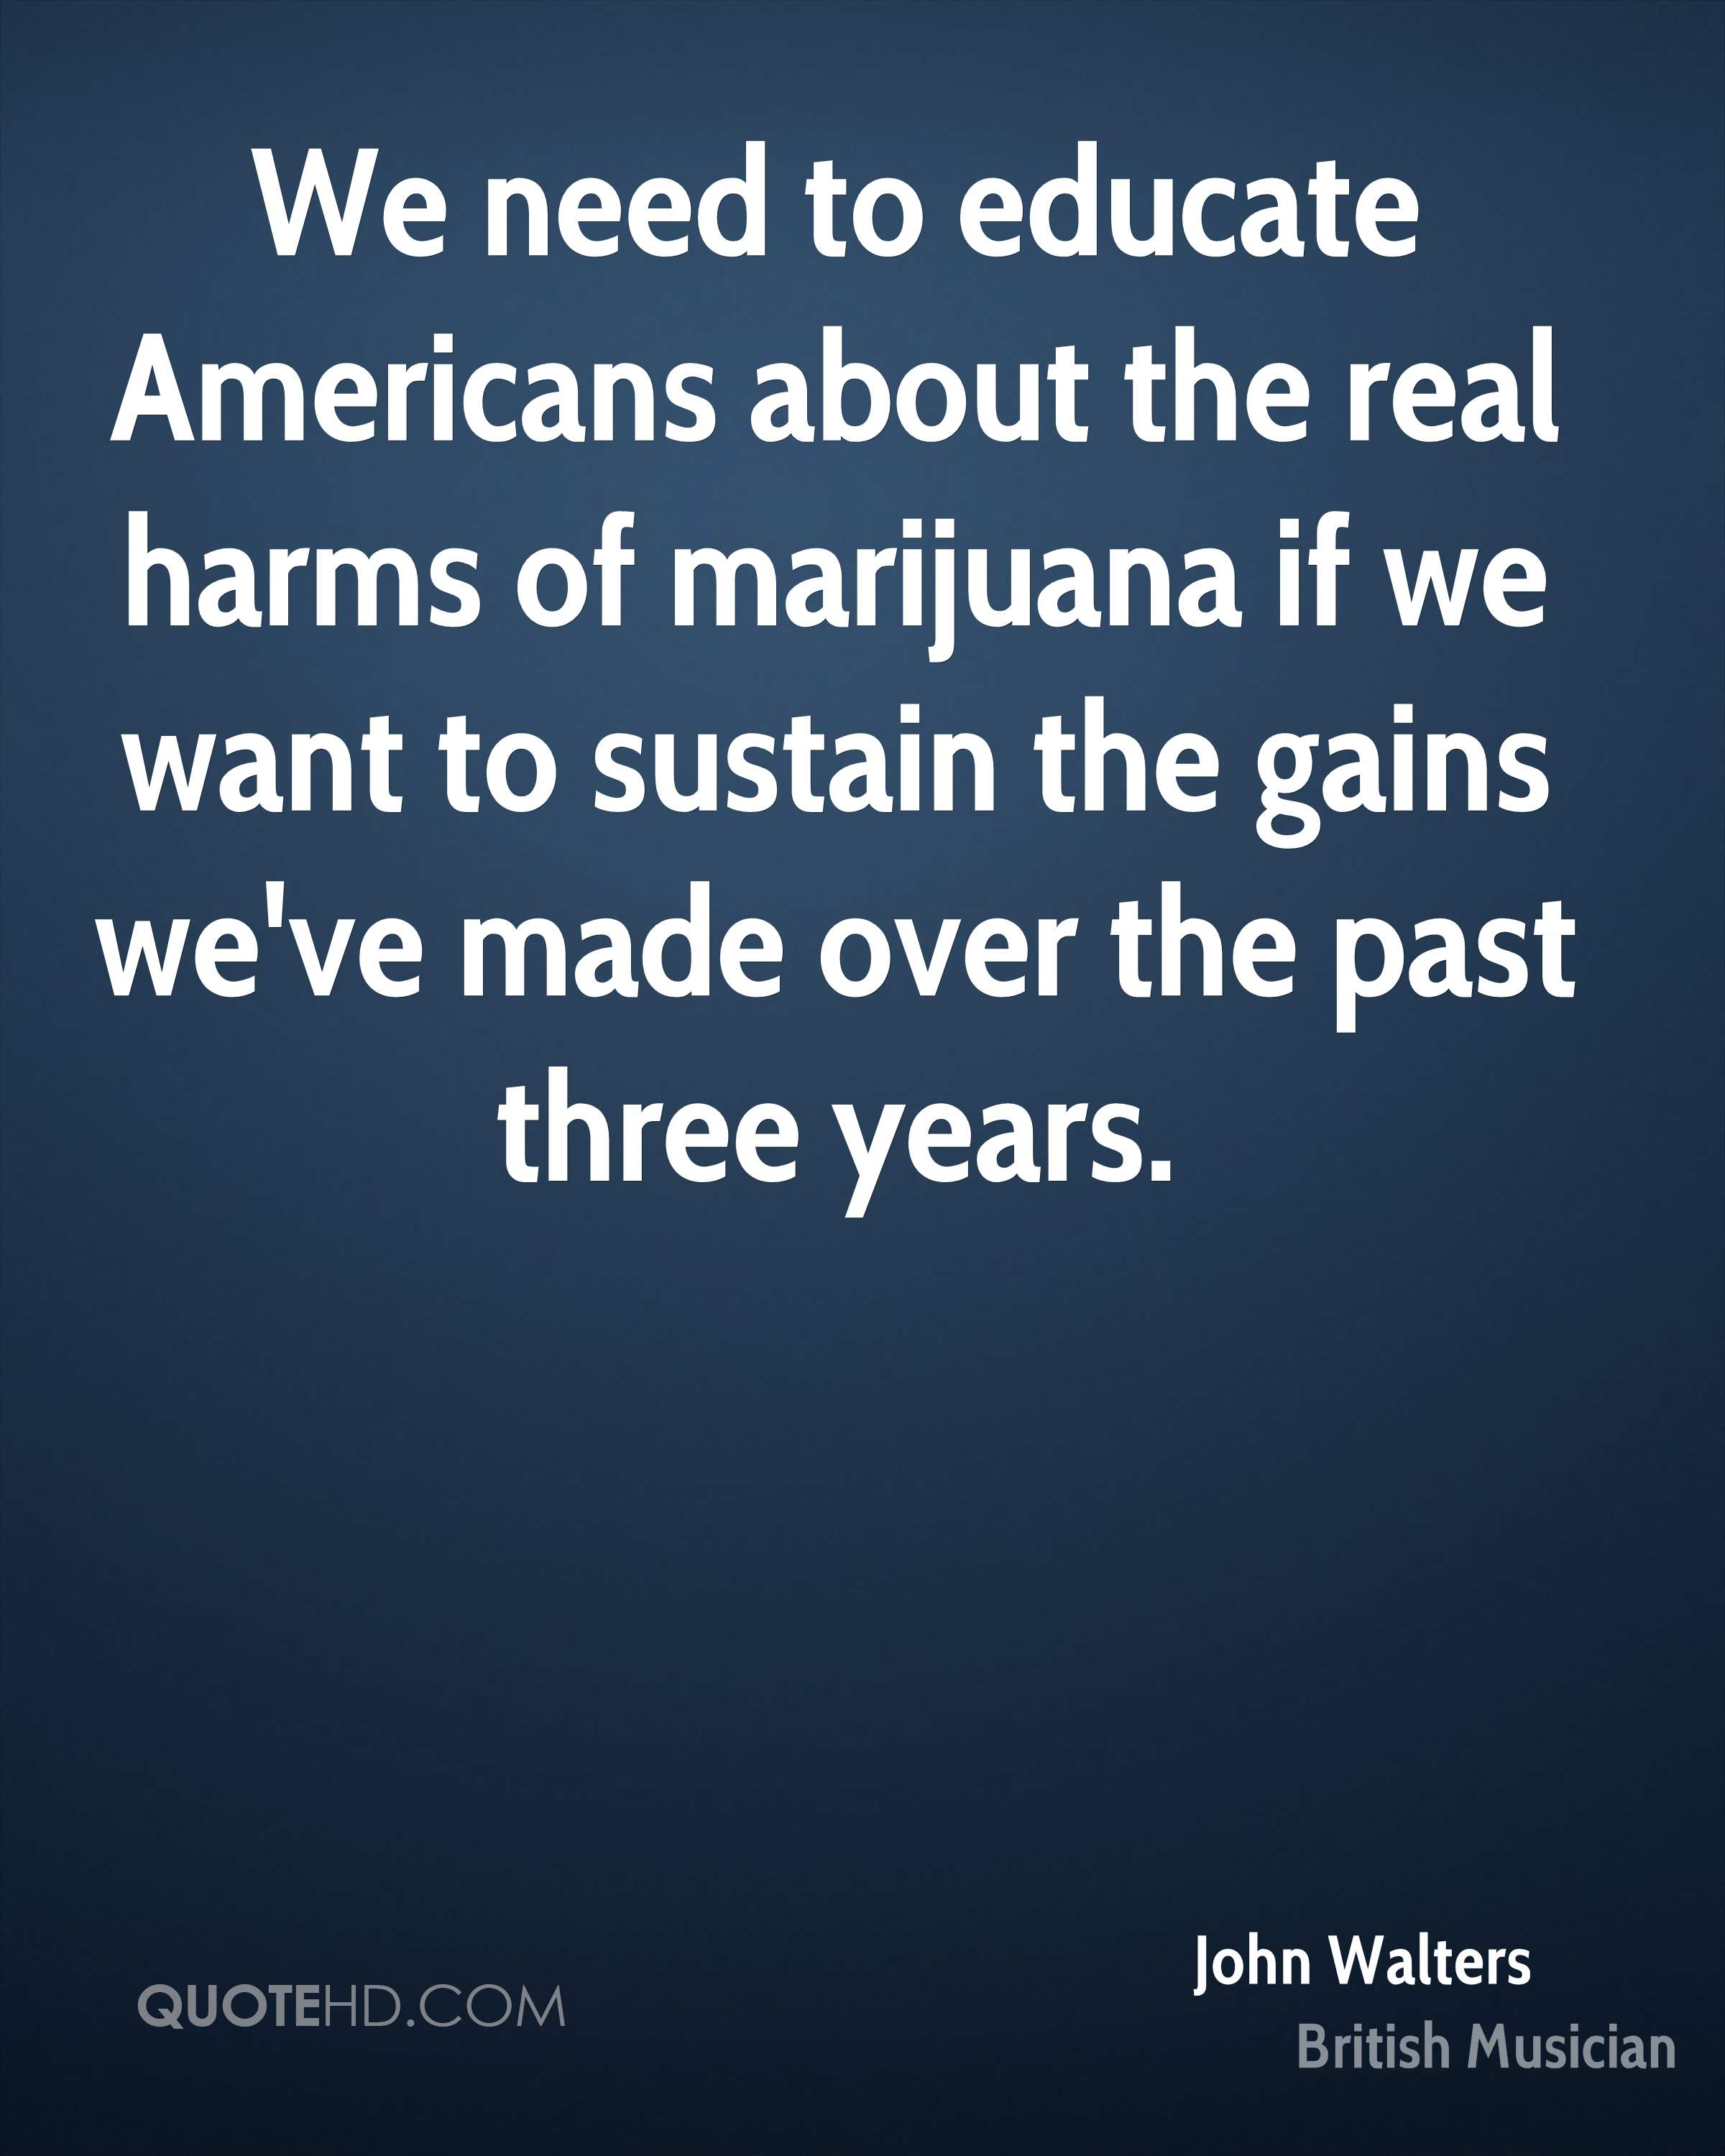 We need to educate Americans about the real harms of marijuana if we want to sustain the gains we've made over the past three years.